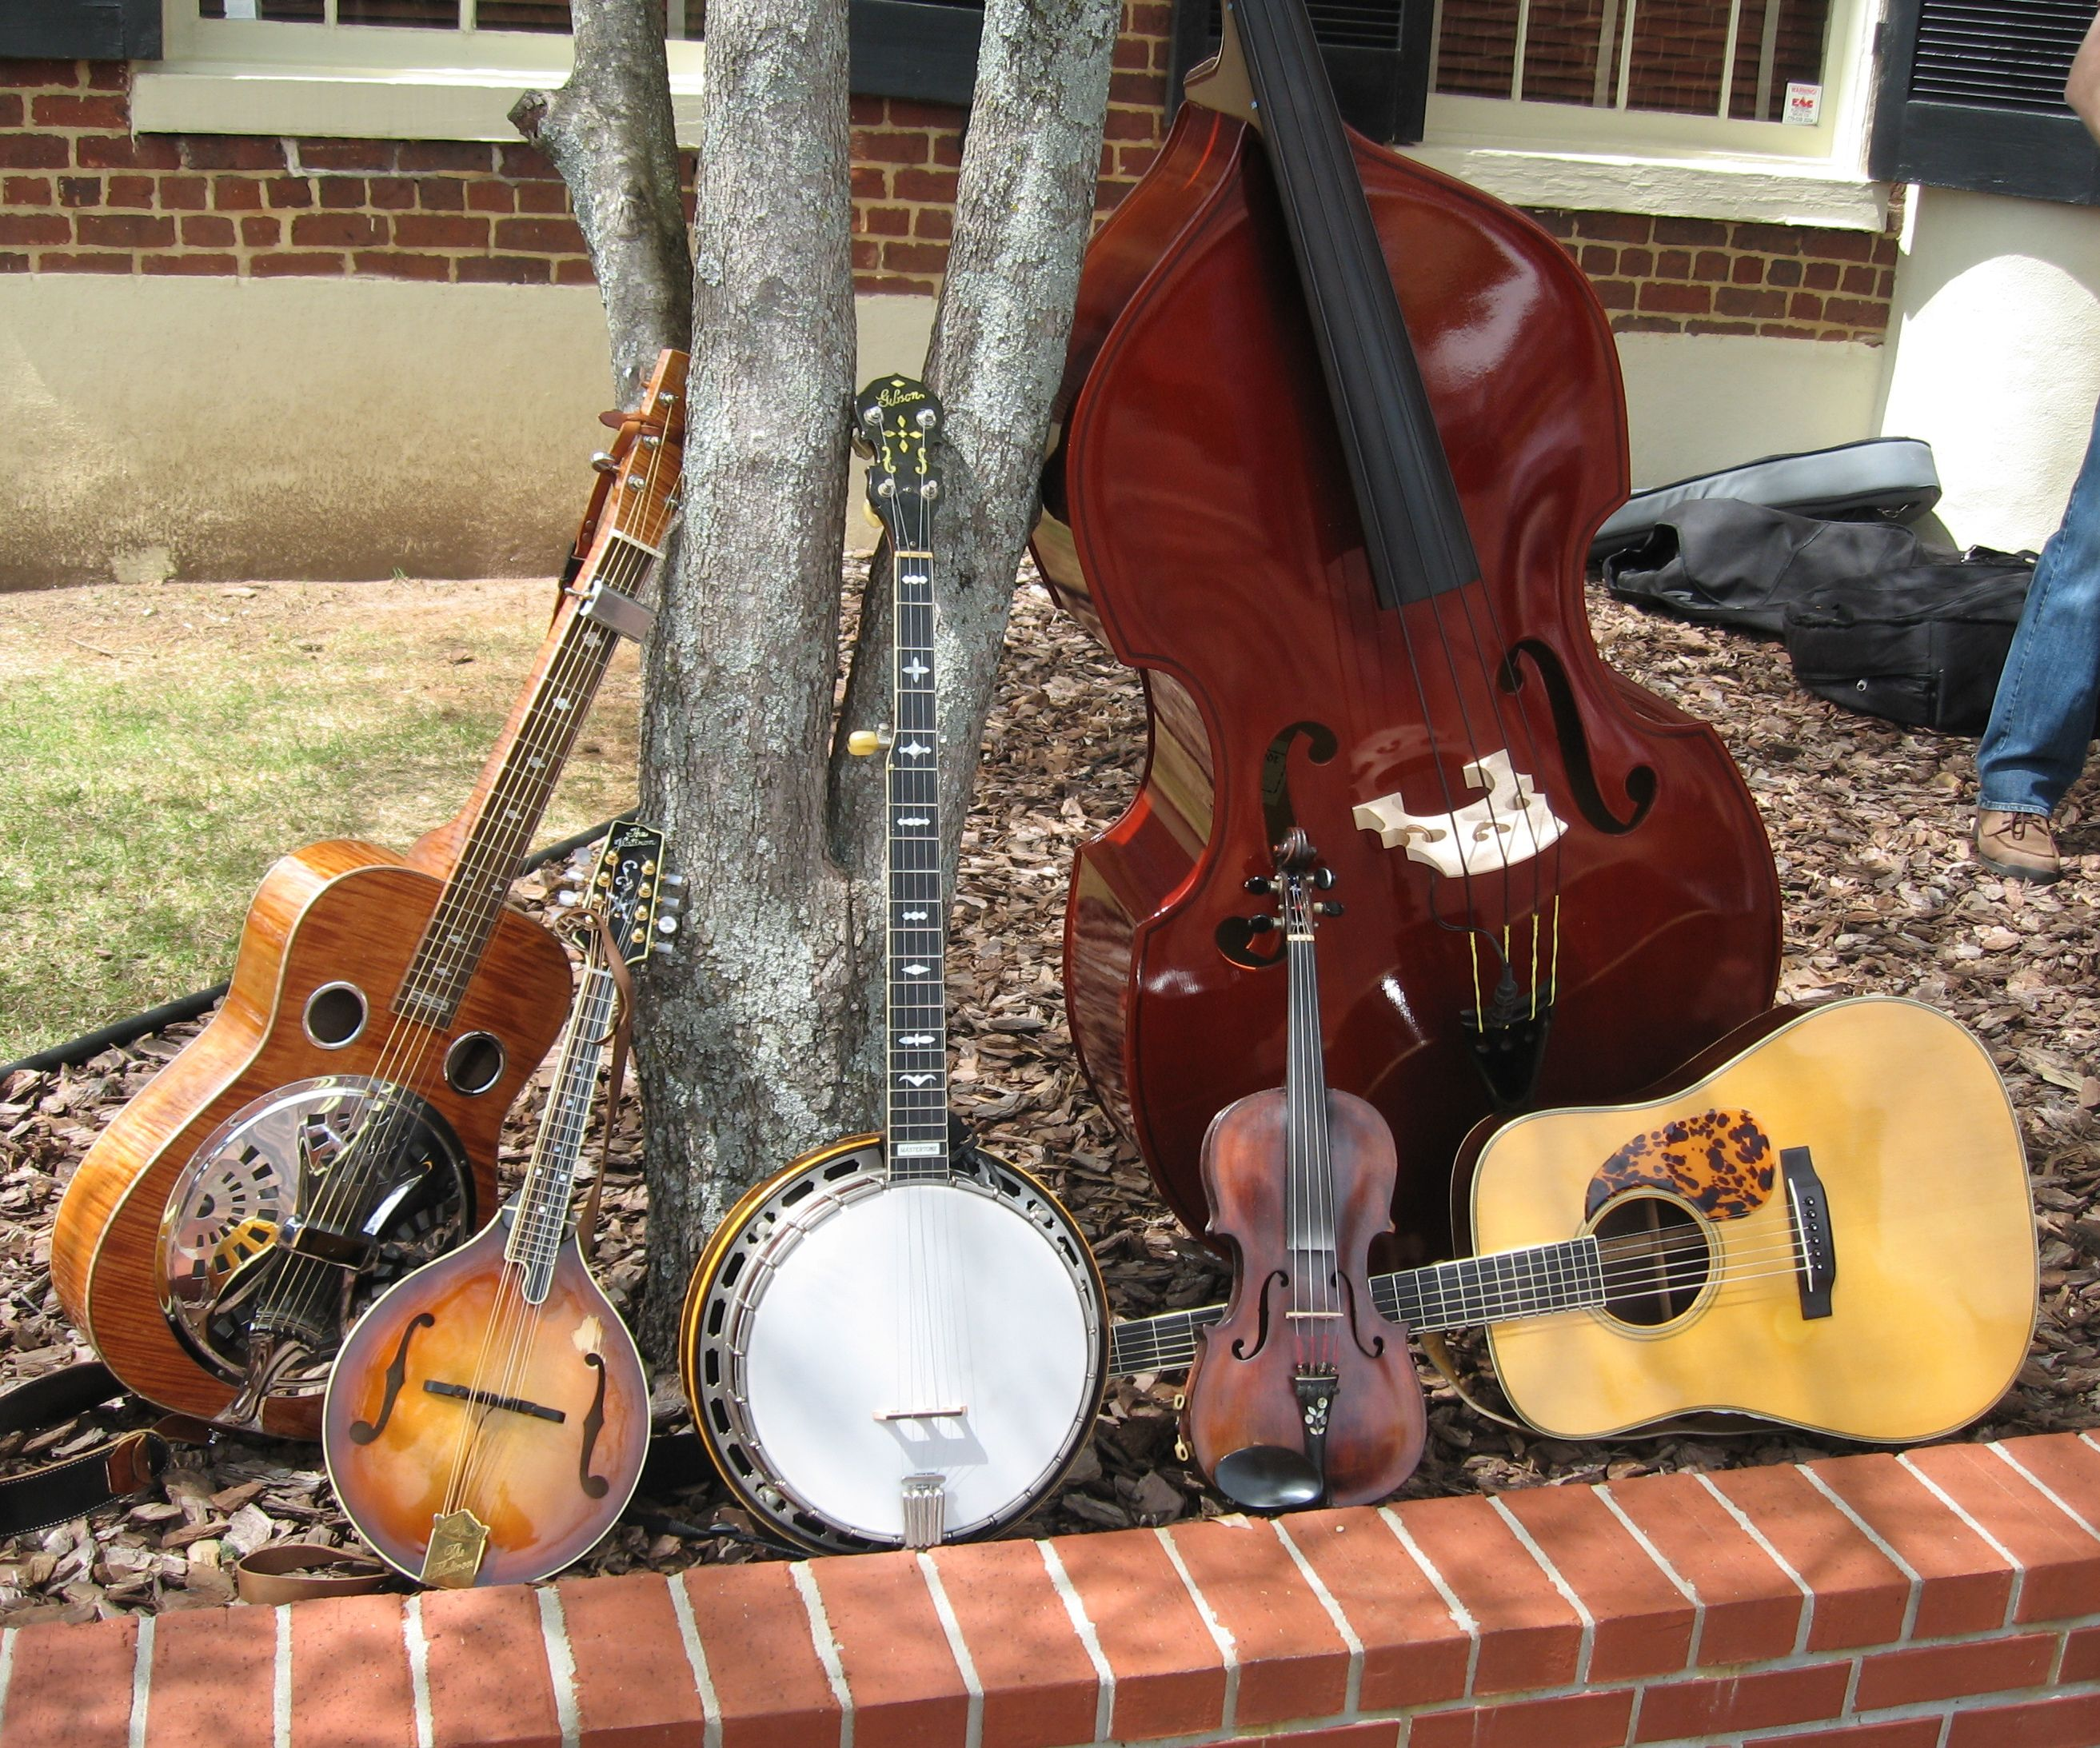 pin by lonesomeday records on instruments in 2019 instruments bluegrass music banjo. Black Bedroom Furniture Sets. Home Design Ideas